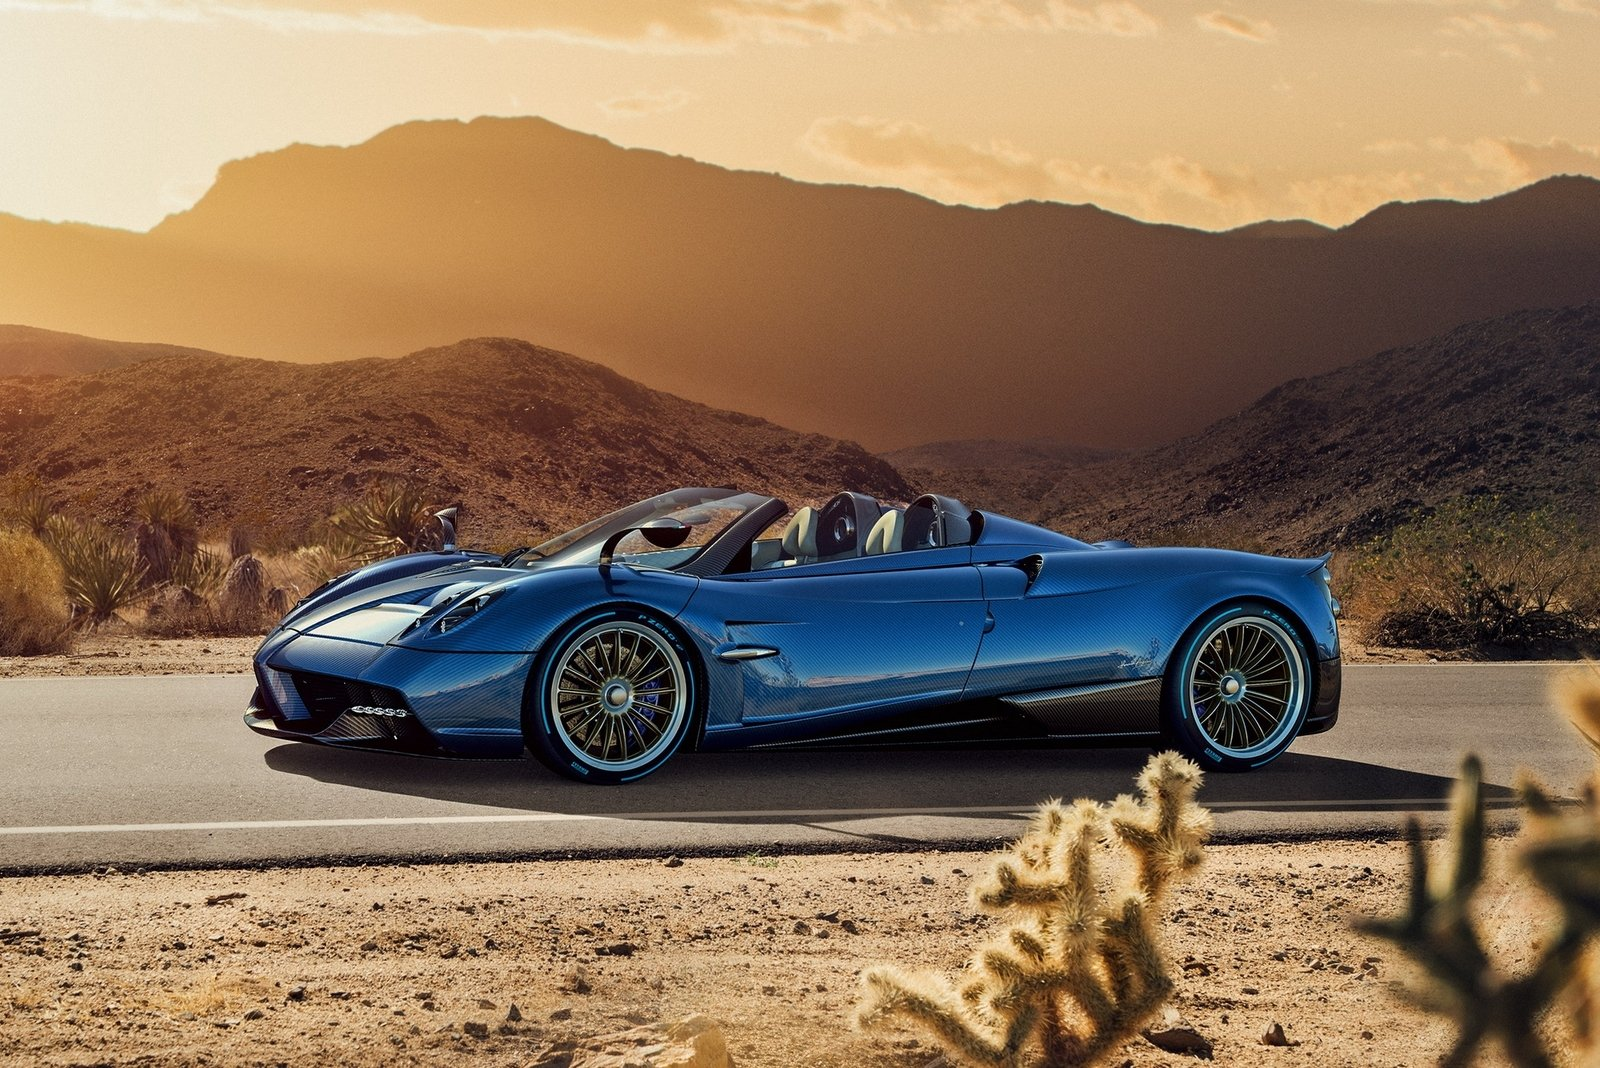 DS pagani huayra roadster : 2018 Pagani Huayra Roadster Review - Top Speed